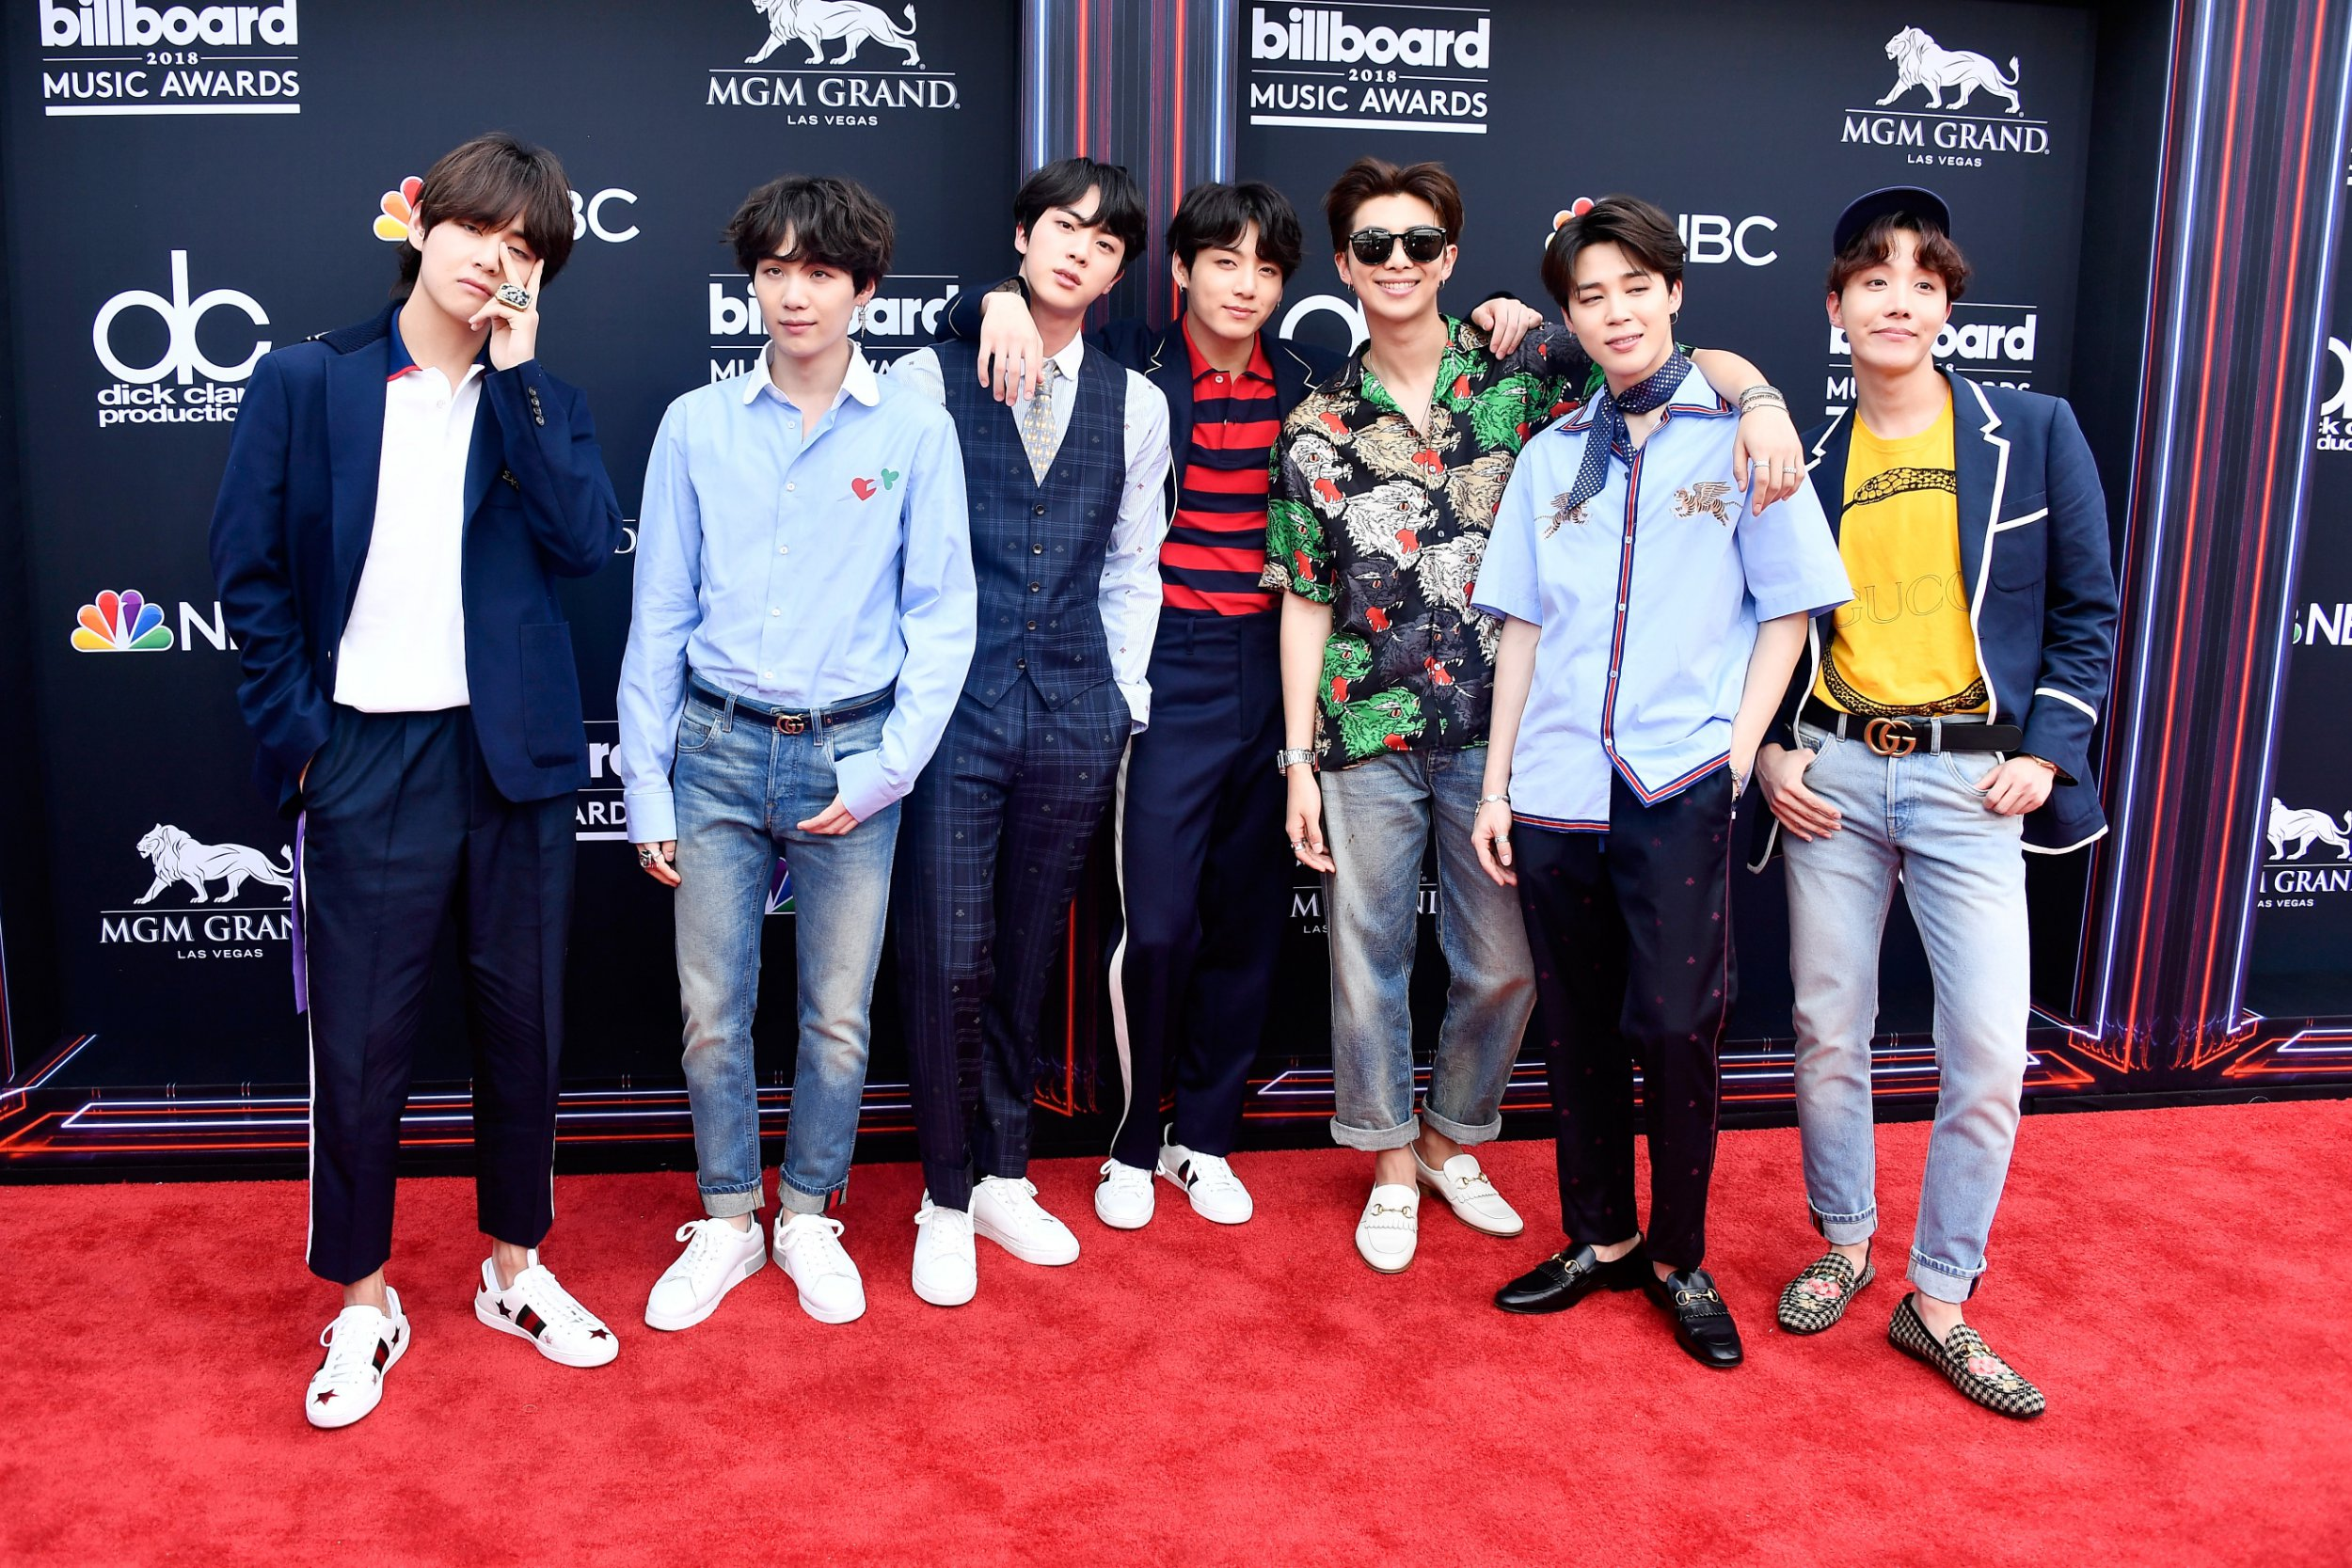 LAS VEGAS, NV - MAY 20: Musical group BTS attend the 2018 Billboard Music Awards at MGM Grand Garden Arena on May 20, 2018 in Las Vegas, Nevada. (Photo by Frazer Harrison/Getty Images)